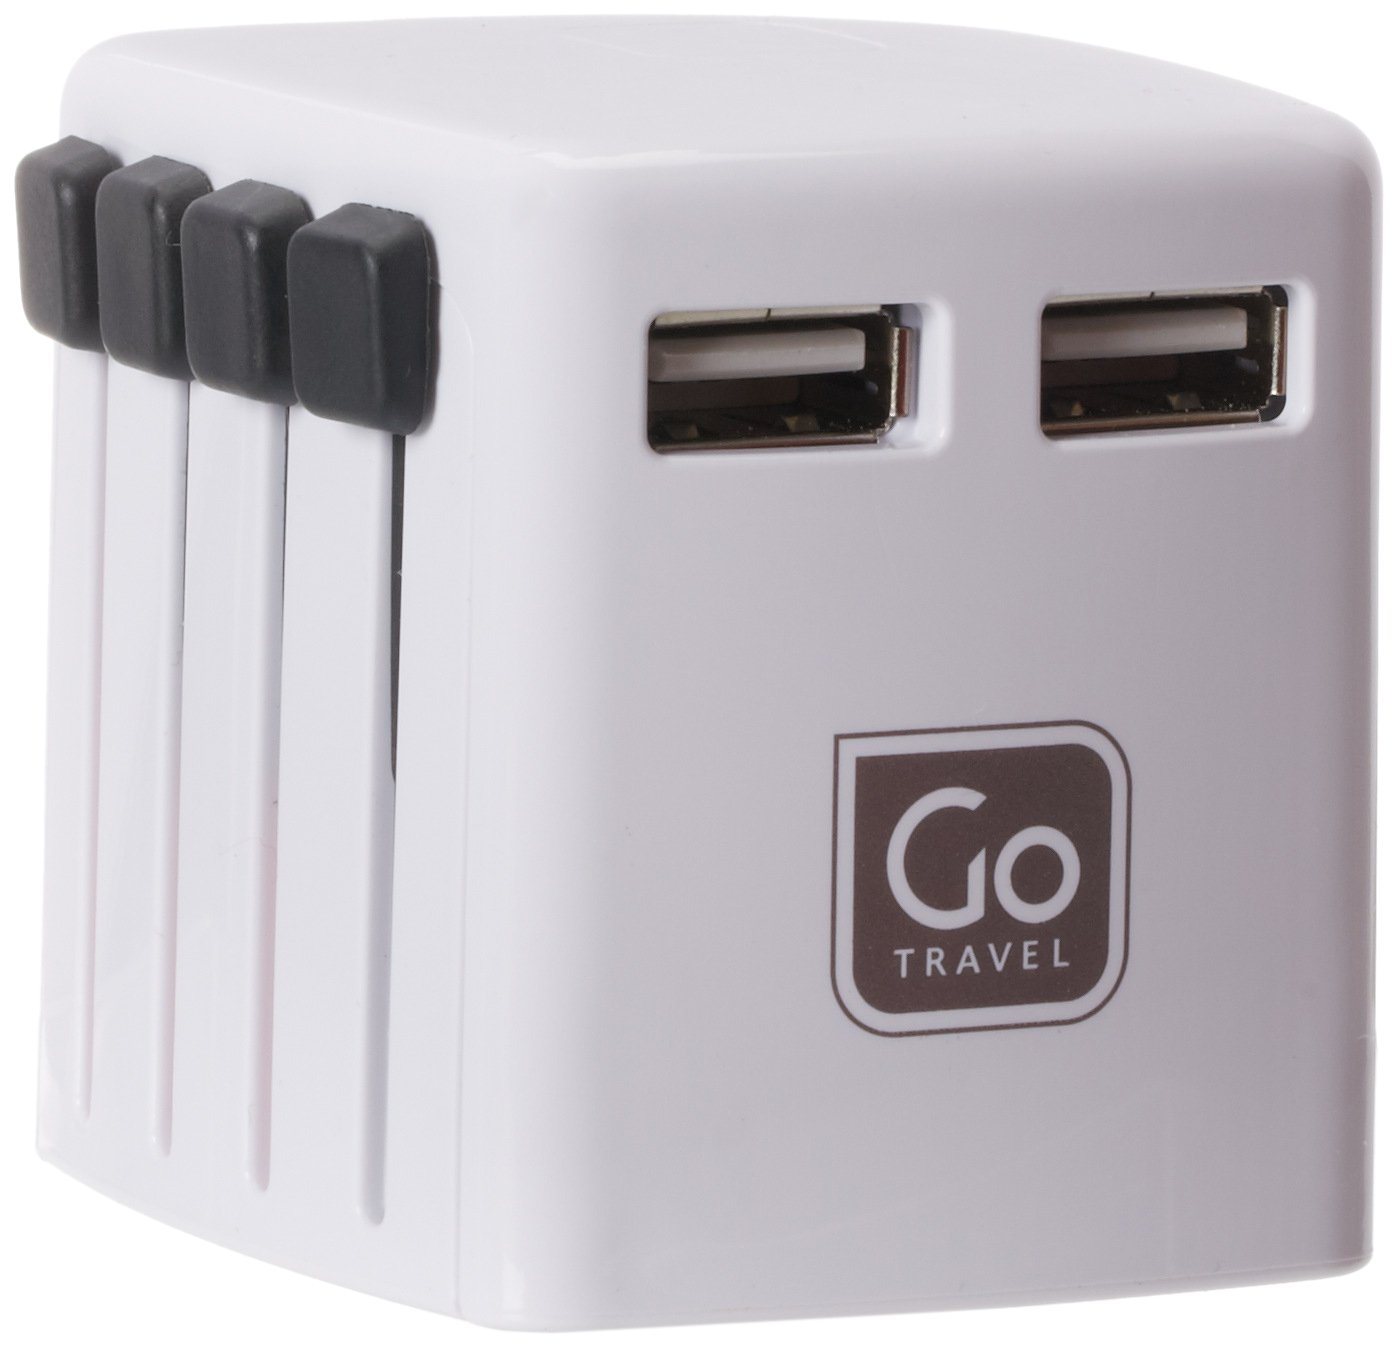 Design Go Go Travel Worldwide Twin USB Charger, White by DESIGN GO